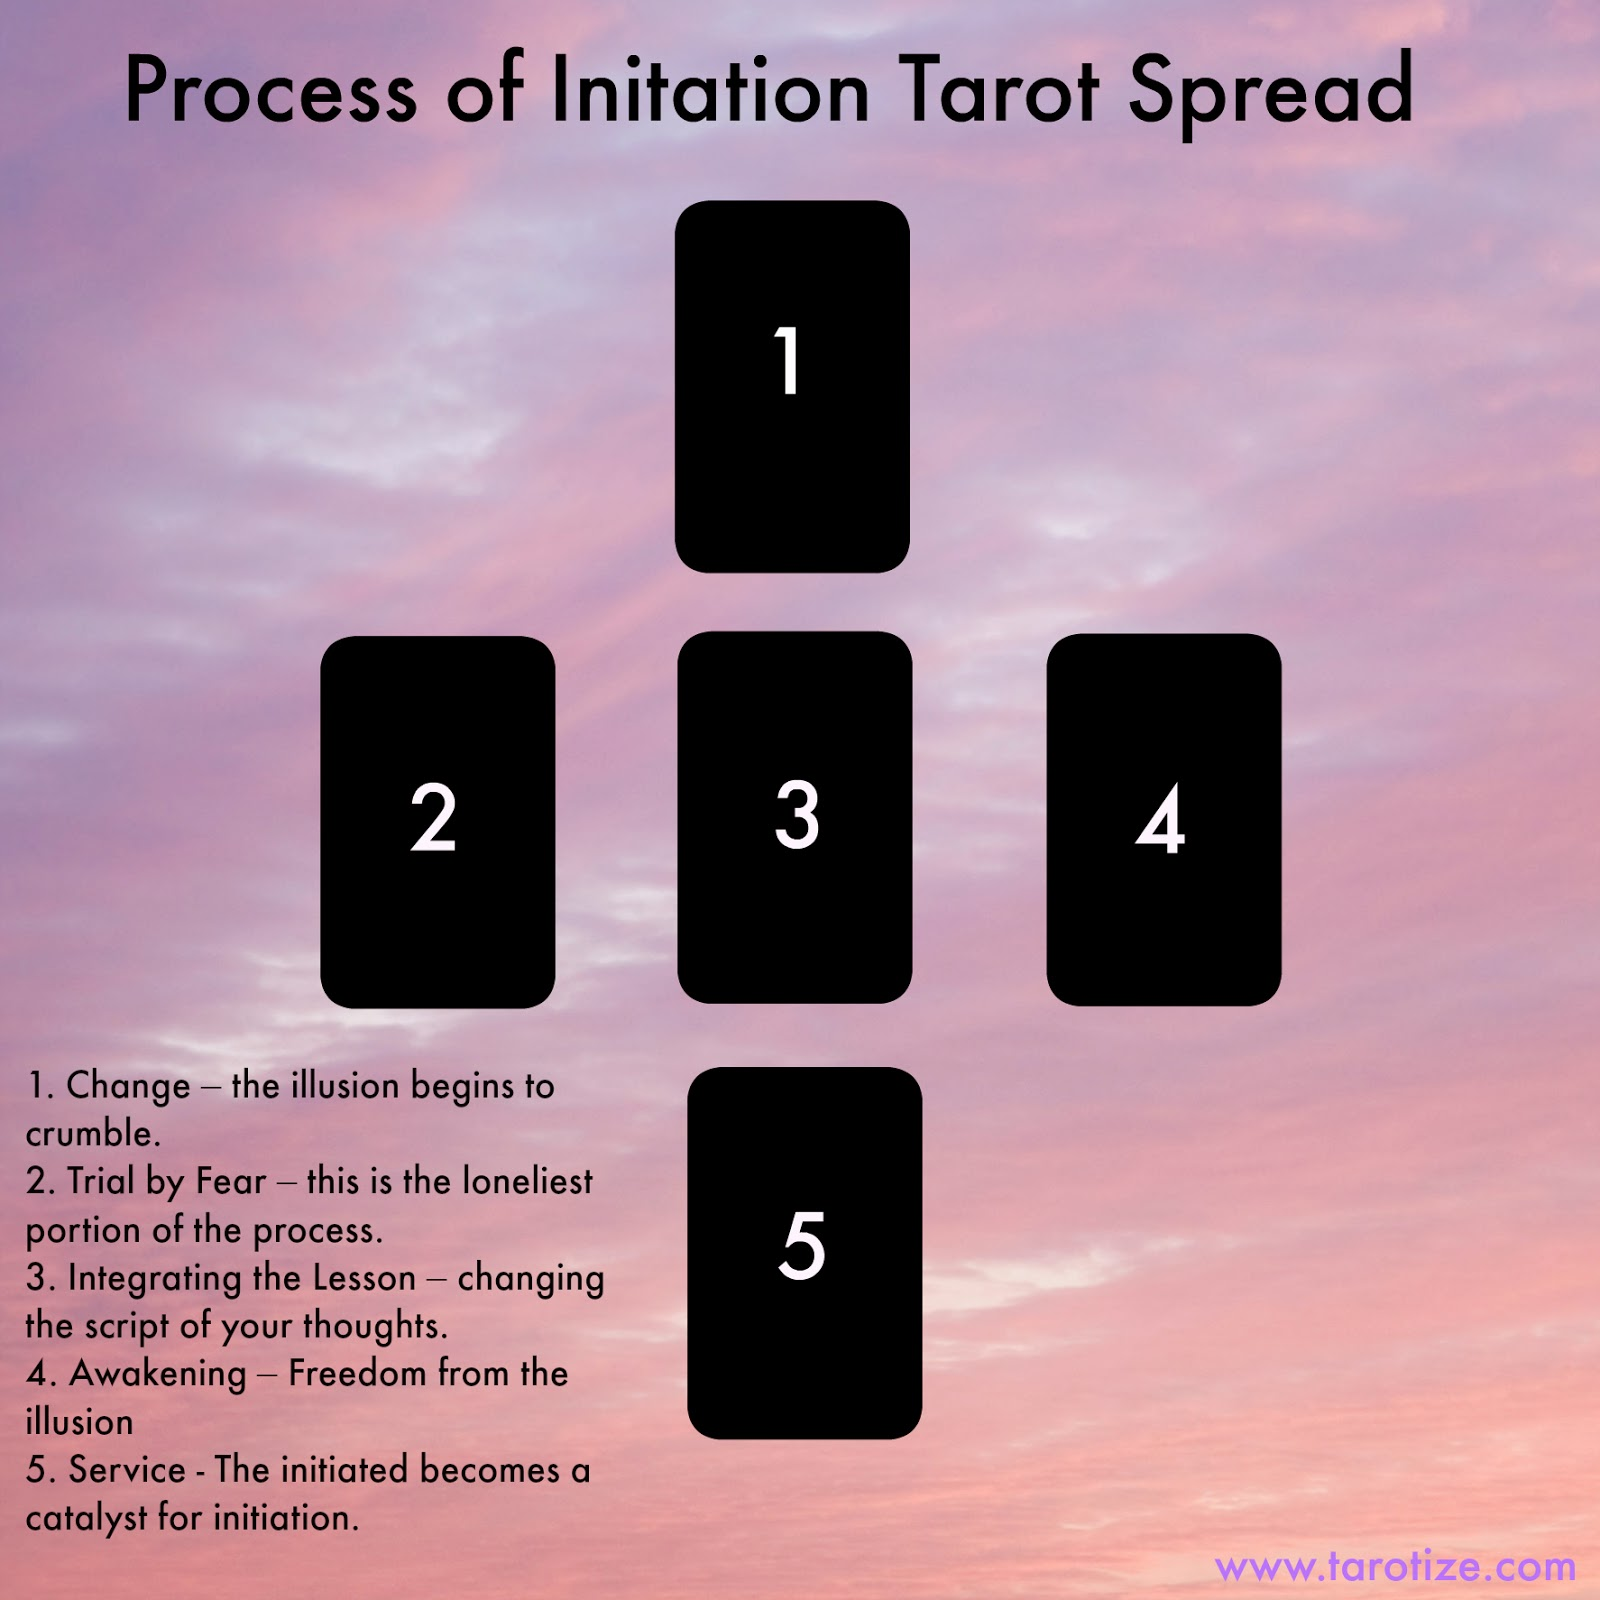 Process-of-Initiation-Tarot-Spread